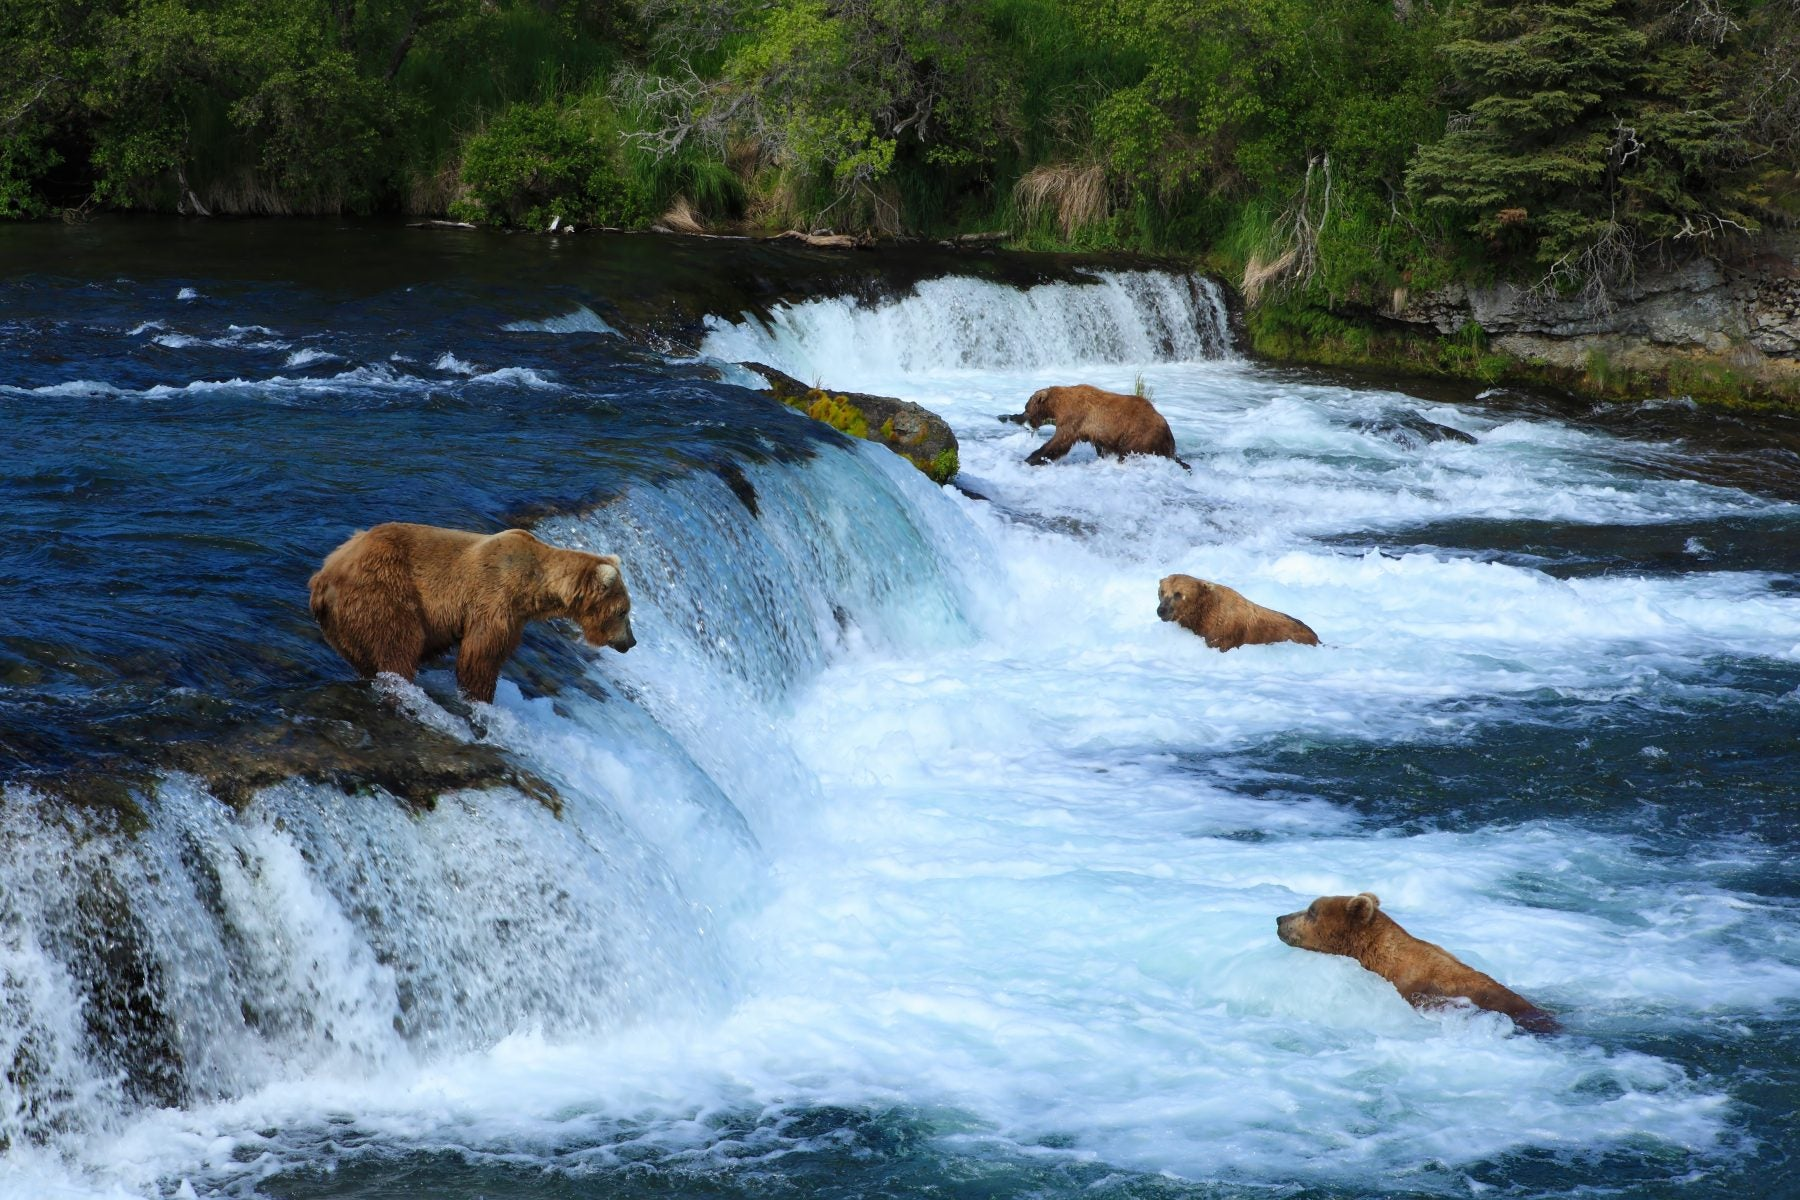 Many Brown Bears in Alaska Catching Salmon